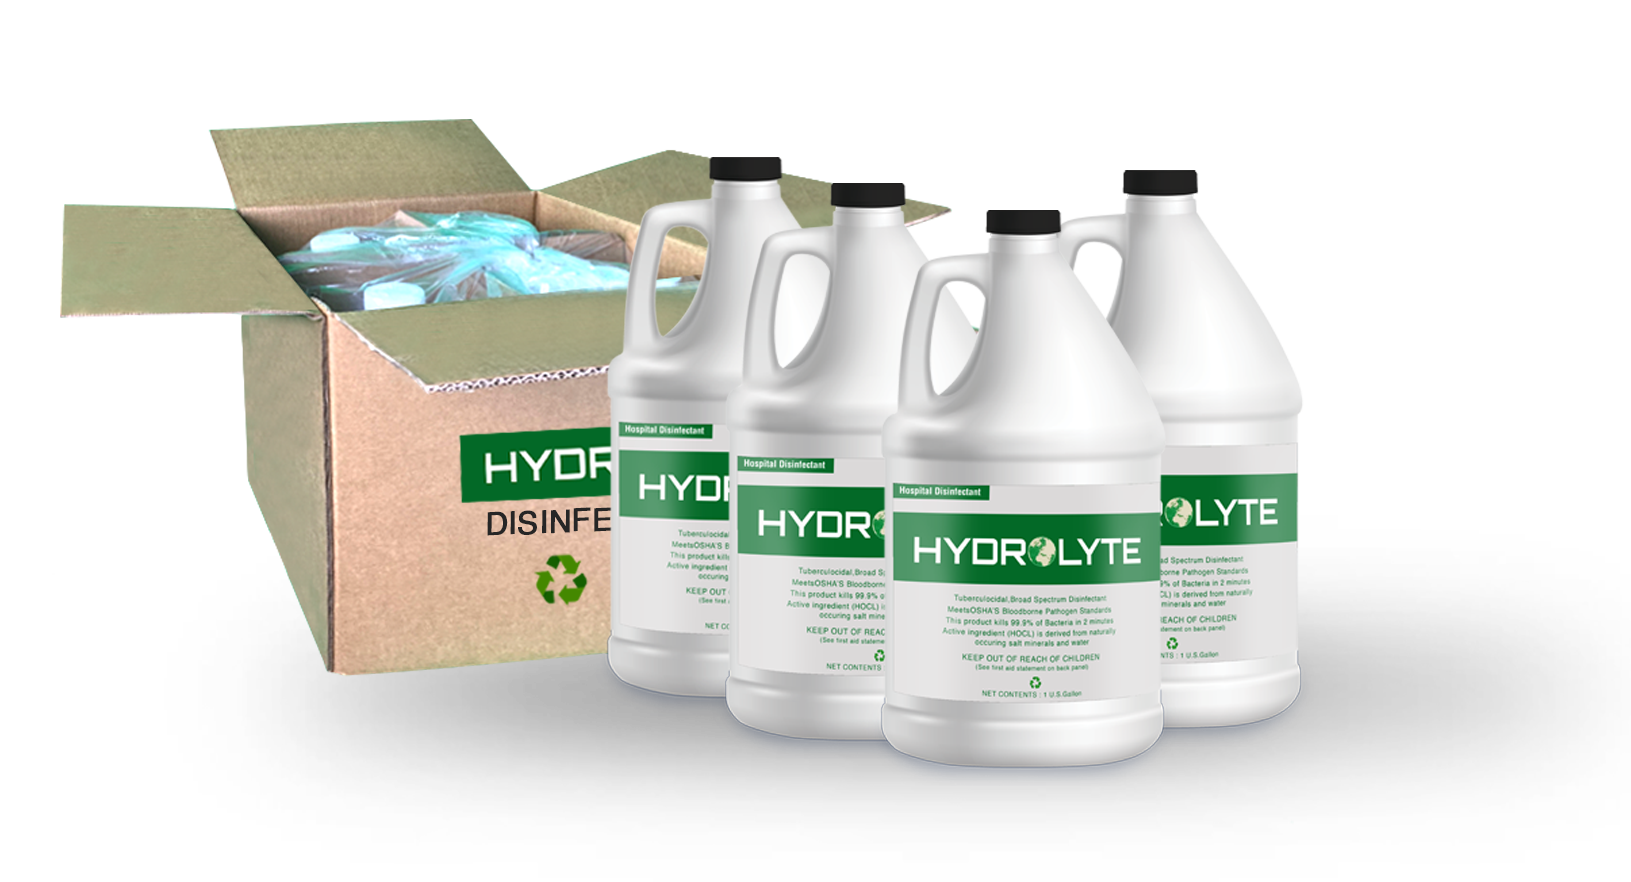 Hydrolyte Disinfectant 4 Gallon Pack